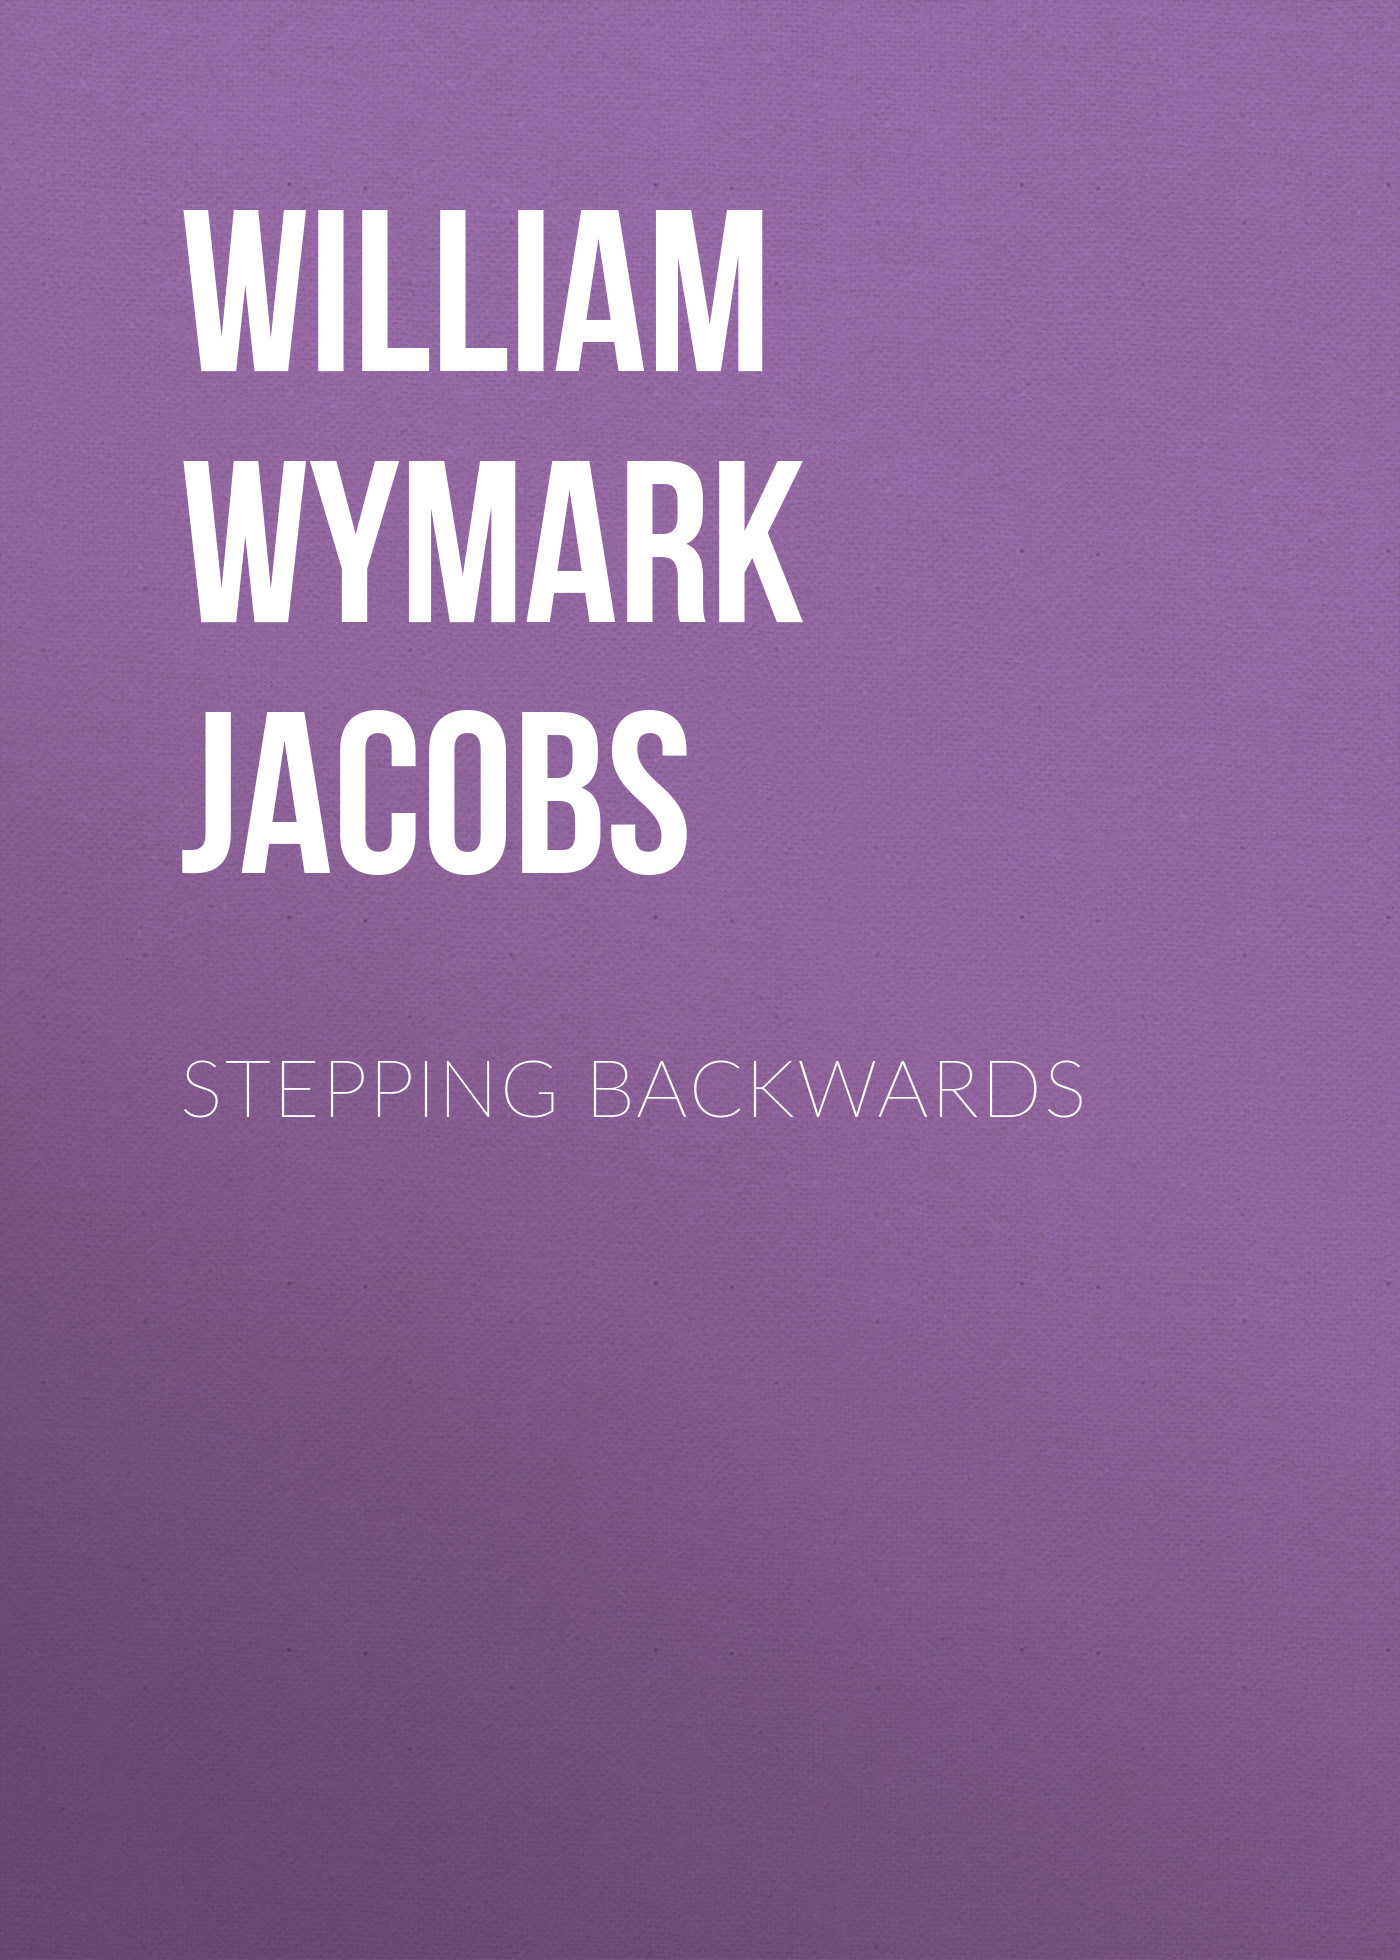 William Wymark Jacobs Stepping Backwards